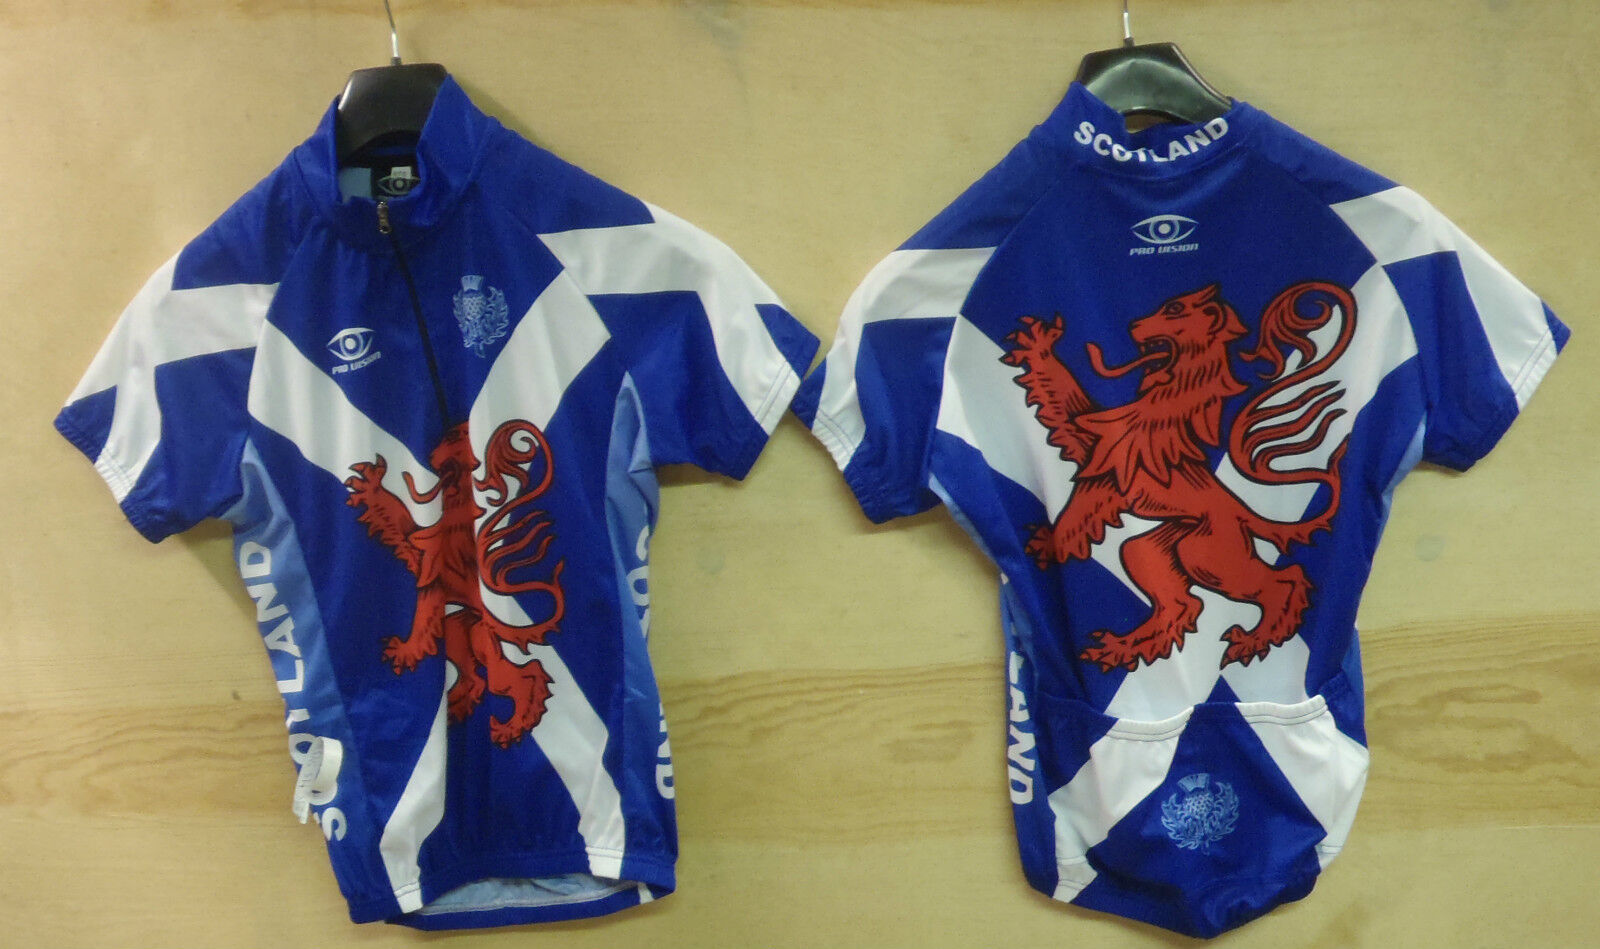 LADIES SCOTTISH SCOTLAND SHORT SLEEVE CYCLING JERSEY SMALL MEDIUM UK P&P FREE